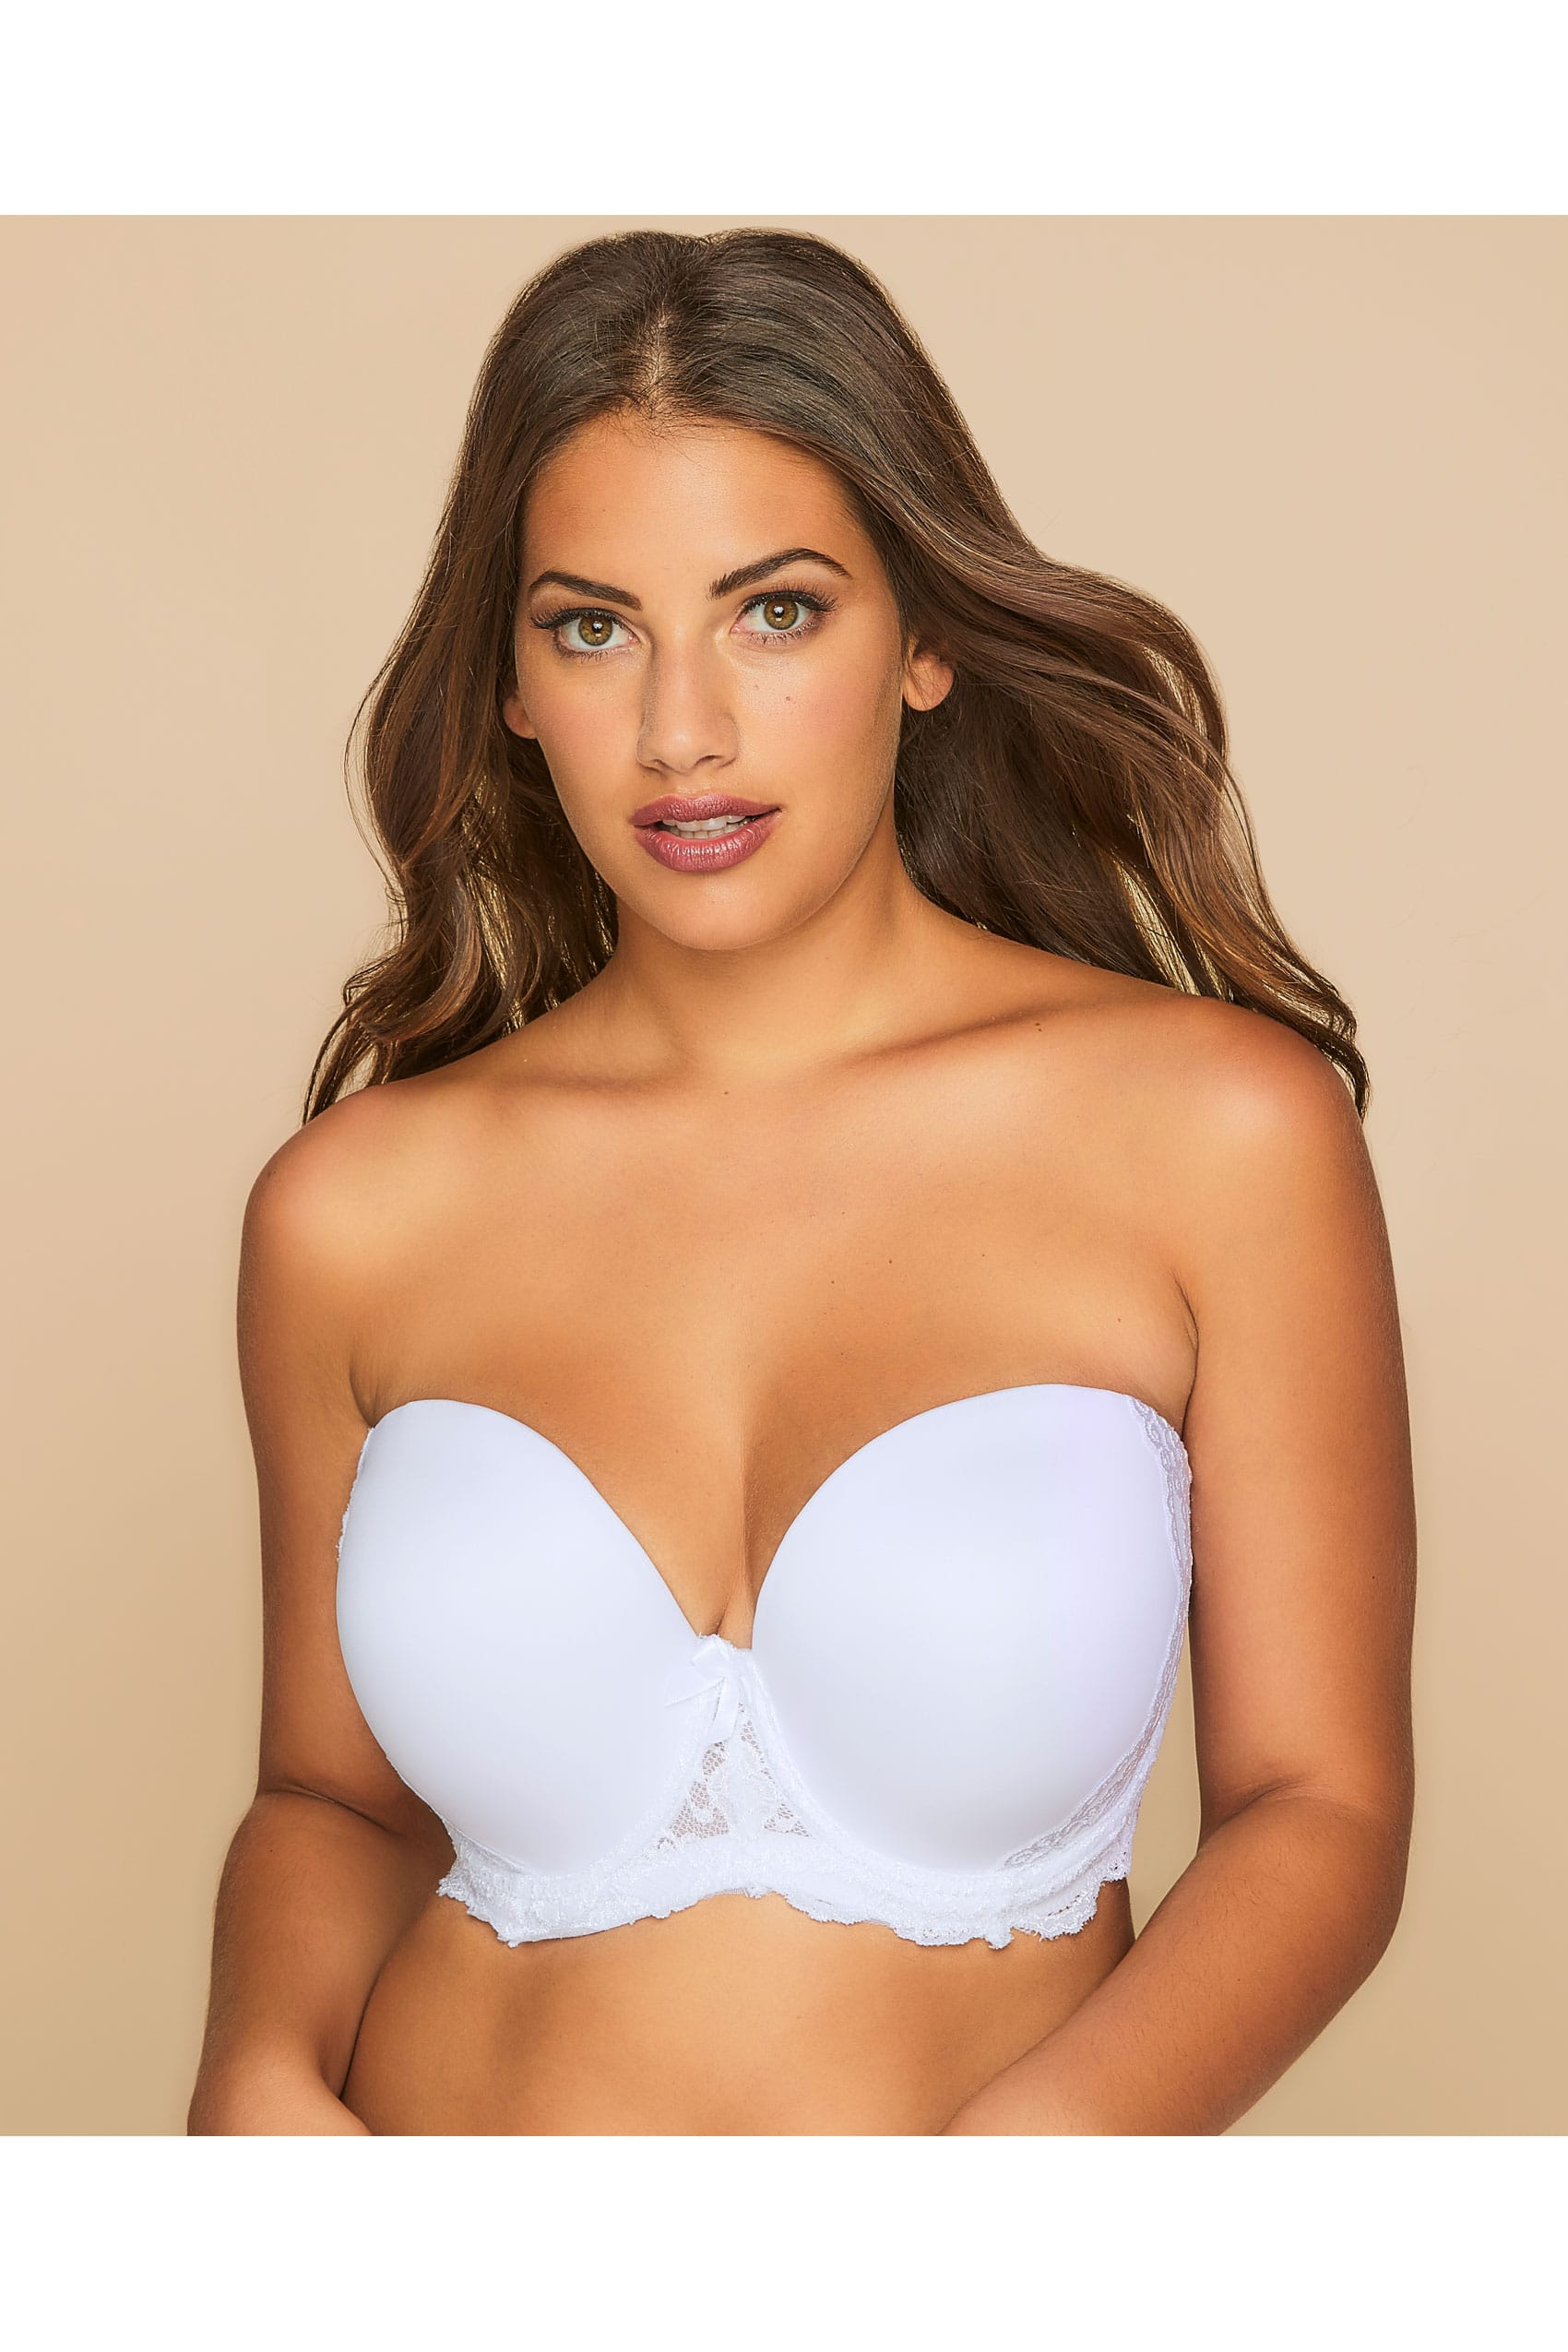 c9b3324634 White Multiway Microfibre Lace Bra With Removable Straps